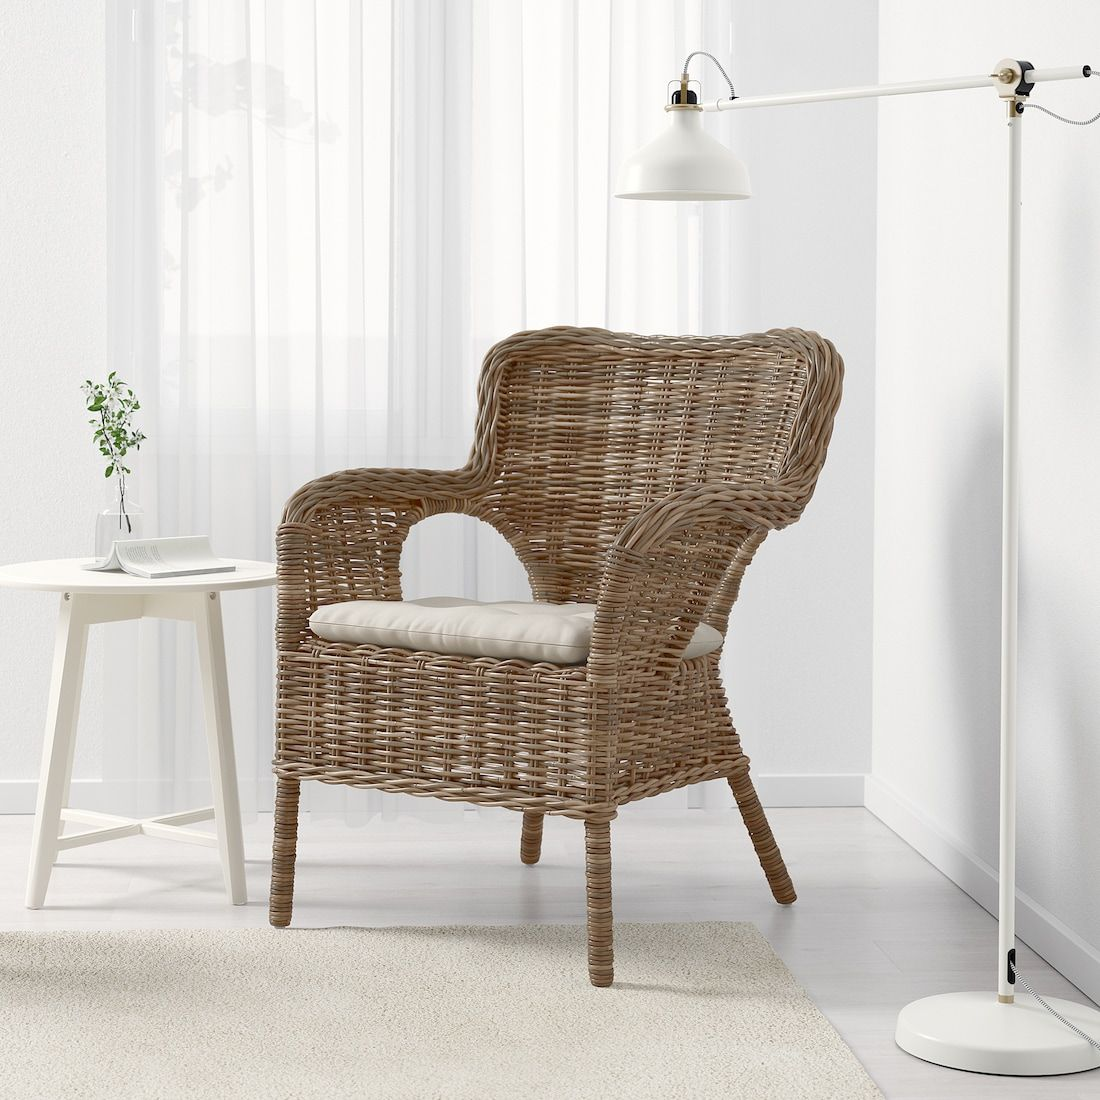 Byholma Armchair Gray Laila Natural Ikea In 2020 Ikea Living Room Chairs Living Room Chairs Uk Affordable Furniture